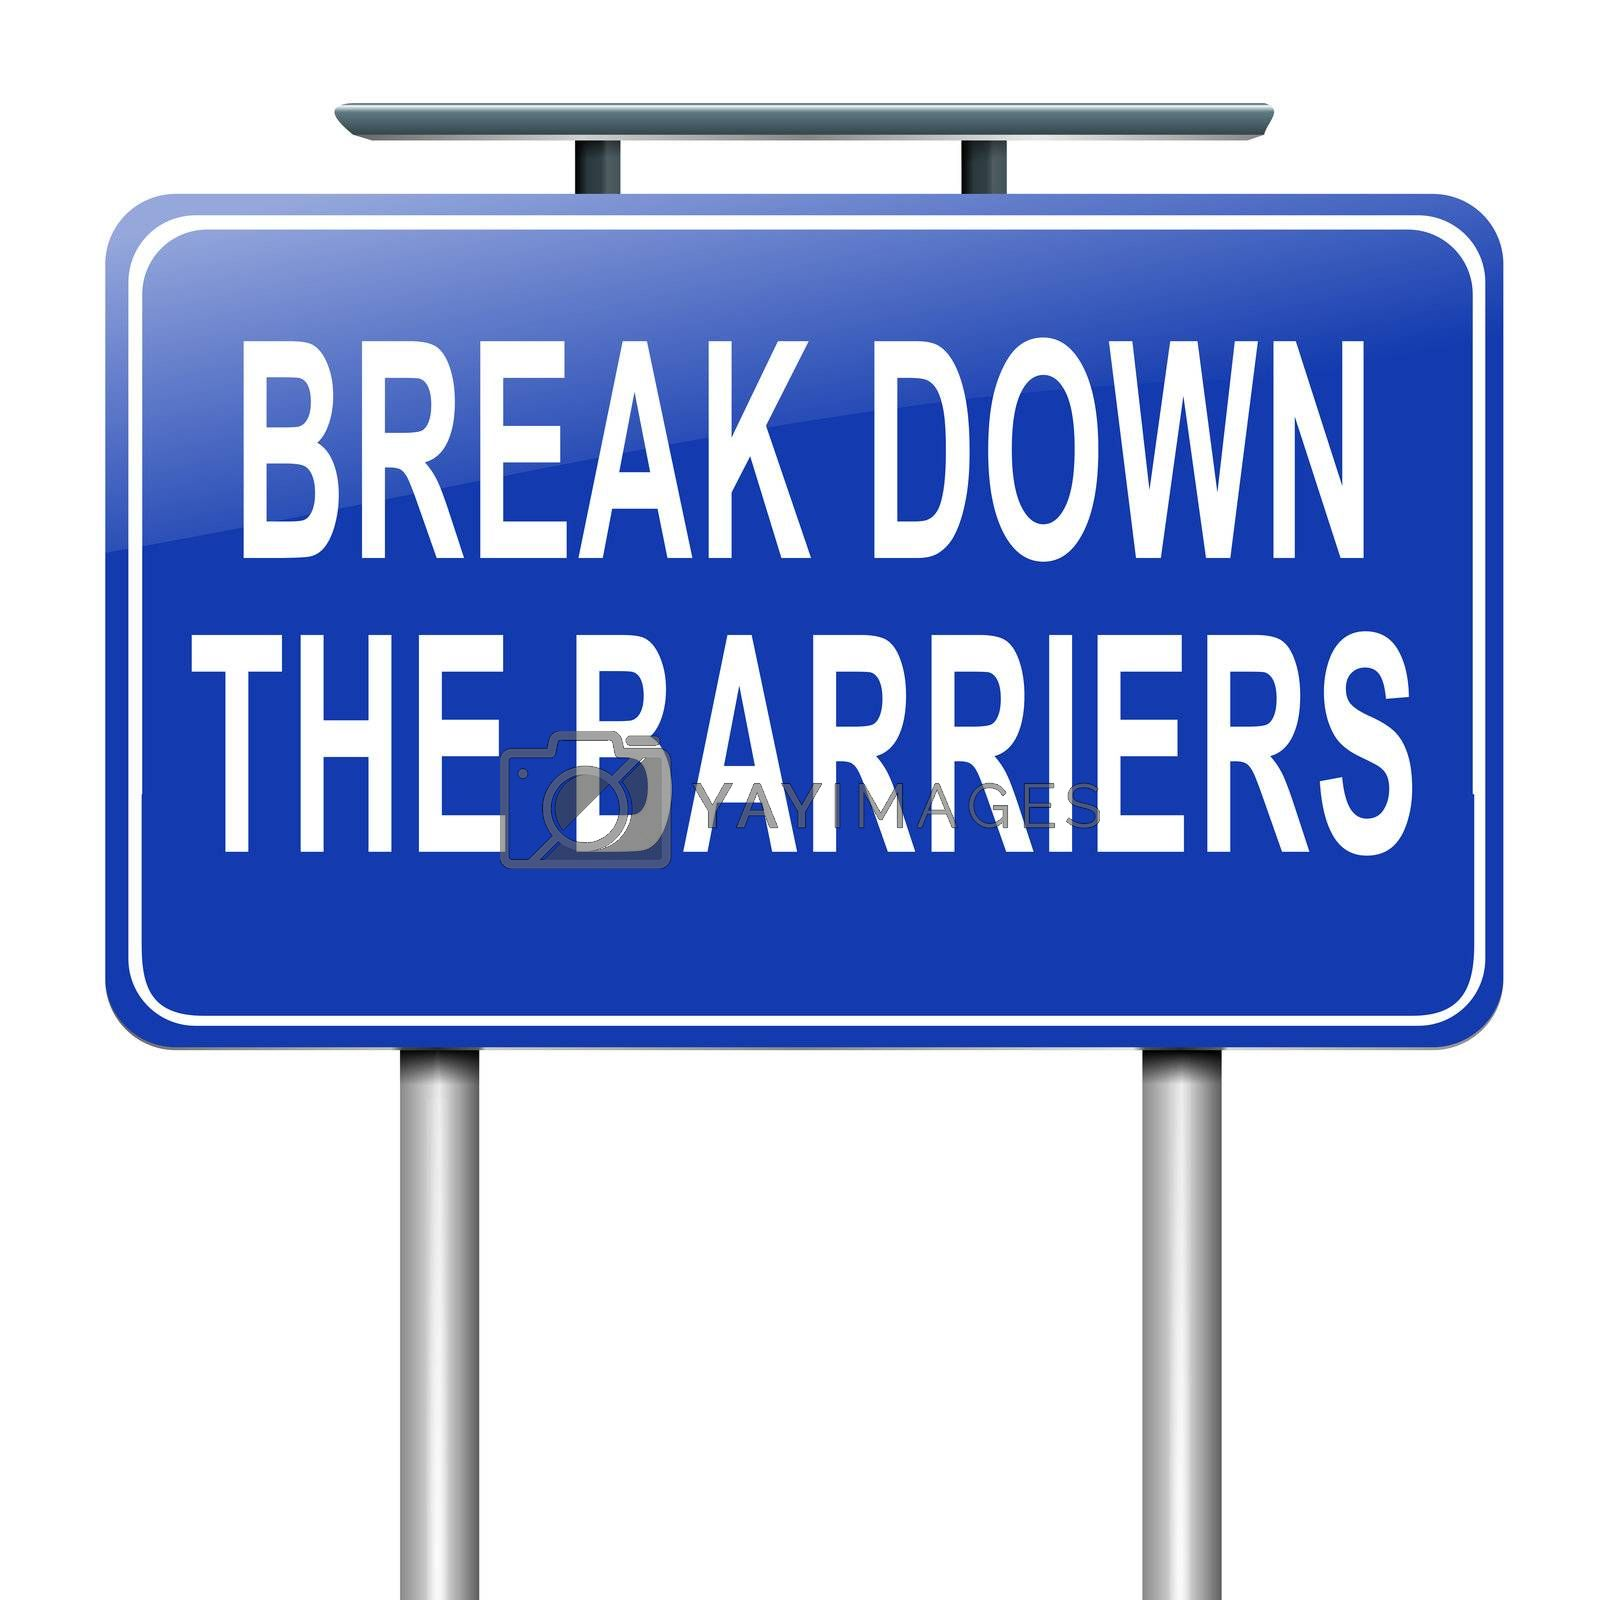 Break down the barriers. by 72soul